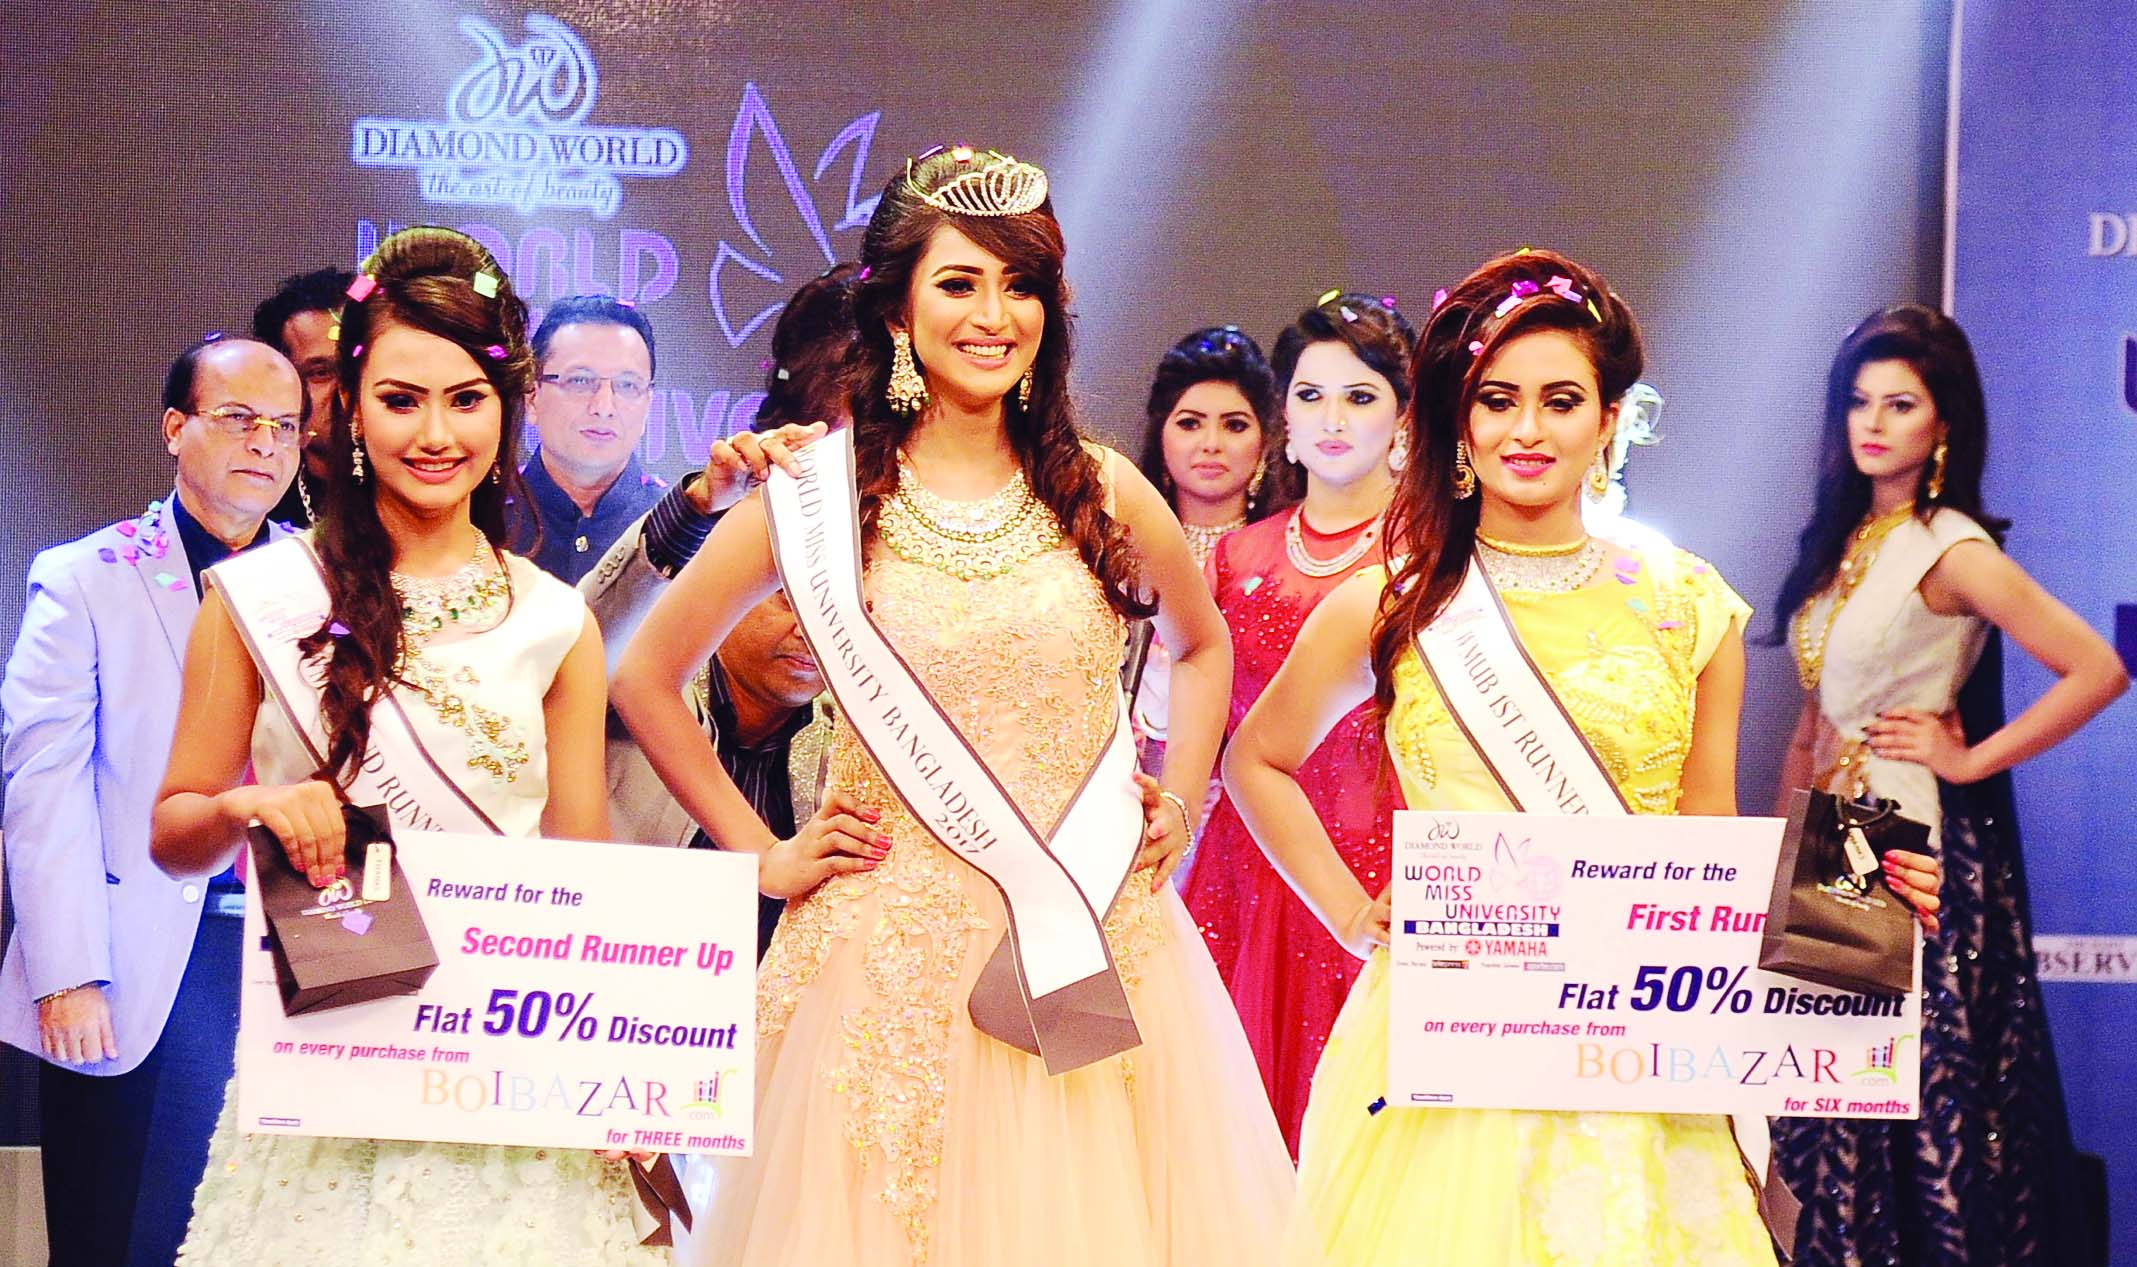 Tahmina Othoi, a student of Chittagong University has been crowned the winner of 'World Miss University Bangladesh' at a gala event presented by Diamond World in the city recently. She will represent Bangladesh in the World Miss University-2017 in Cambodia on 19 December. First runner-up Tahsin Wazed Esha is a student of North-South University and the second runner up Fatema Yasmin Lia is a student of BGMEA University. Prime Minister's media advisor Iqbal Sobhan Chowdhury was present at the grand finale as the Chief Guest.